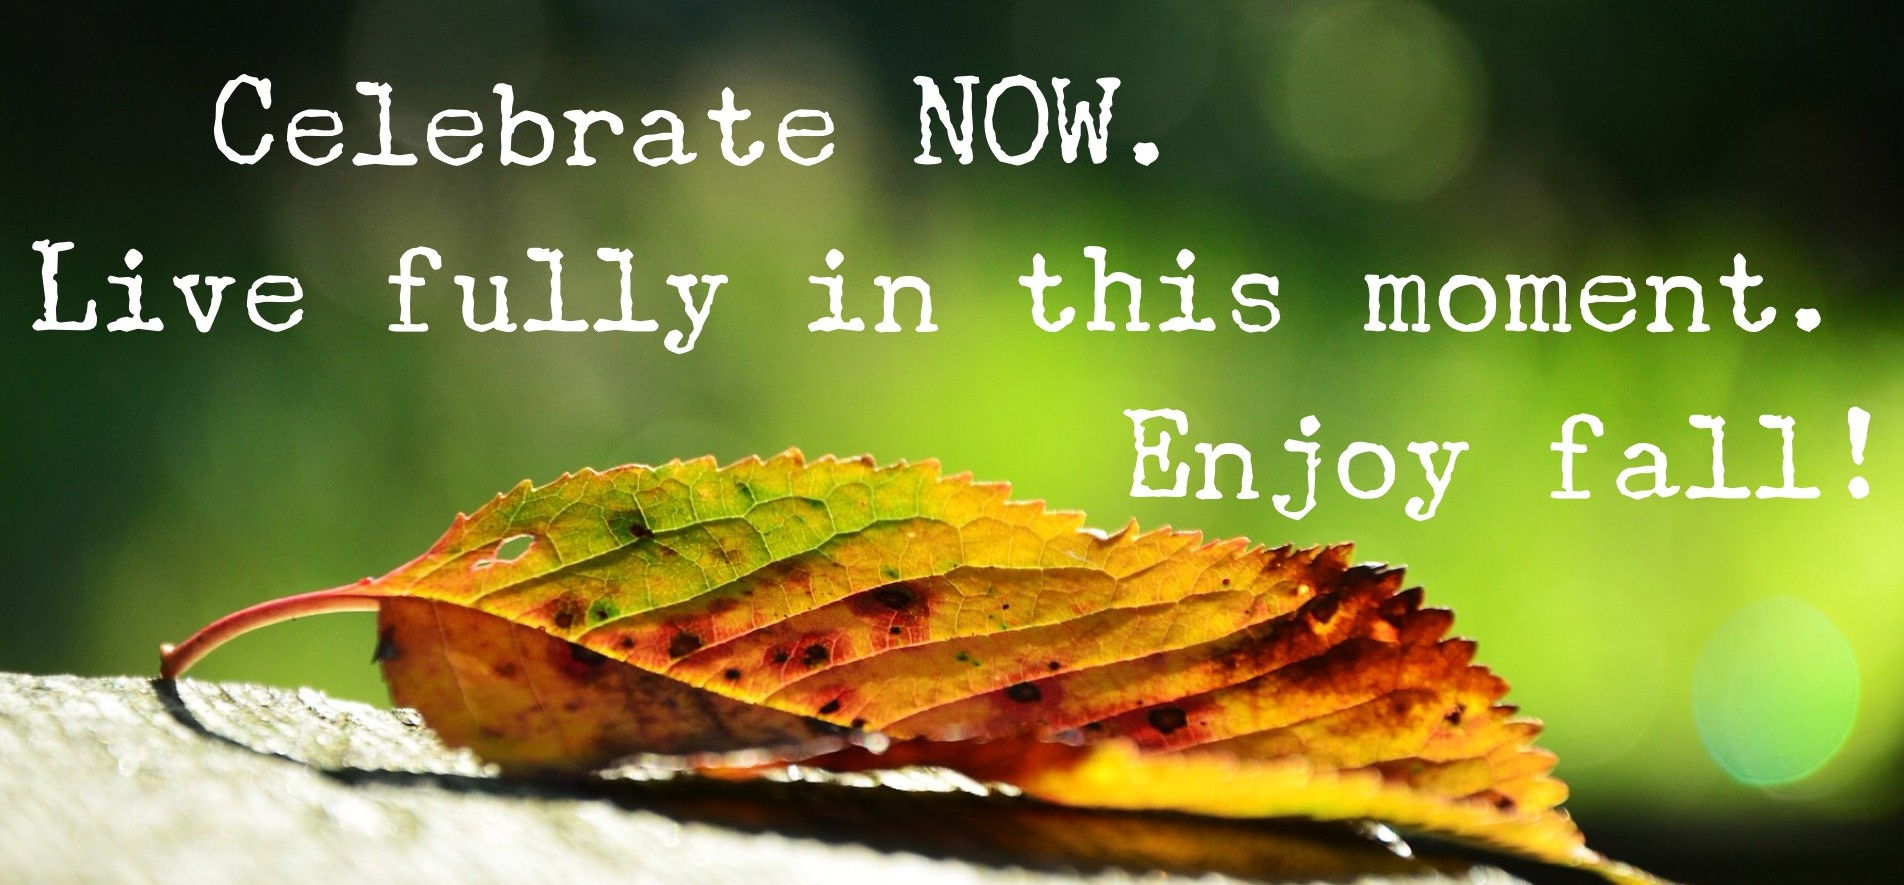 Sometimes, we homeschool moms tend to overthink making memories. The Nester has it right… It doesn't have to be perfect to be beautiful. To that end, here are 10 ways to enjoy fall right now. Don't wait to organize the perfect nature study hiking trip or to get to the store to bake an apple pie. Celebrate now. Live fully in this moment. Enjoy Fall!